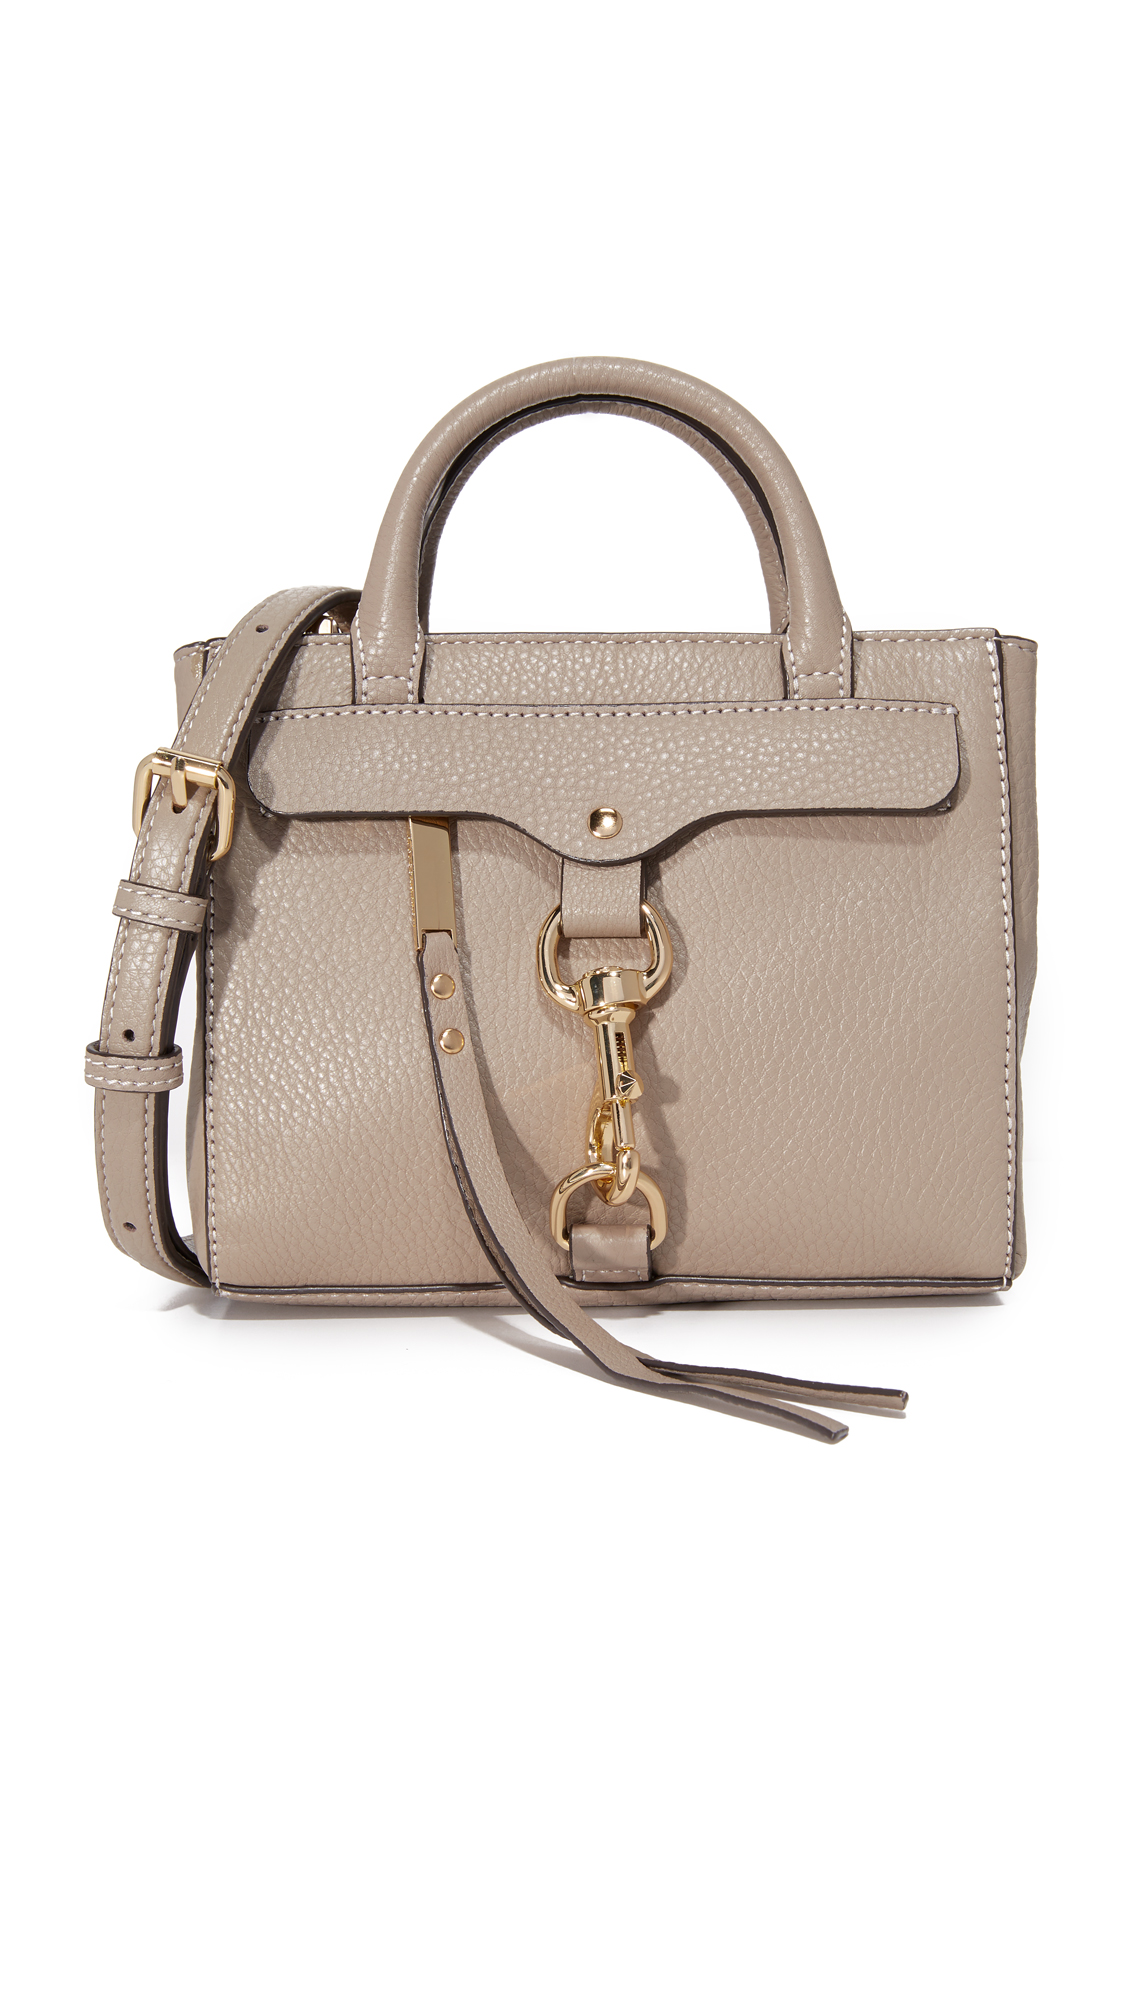 Rebecca Minkoff Dog Clip Tote Cross Body Bag - Mushroom